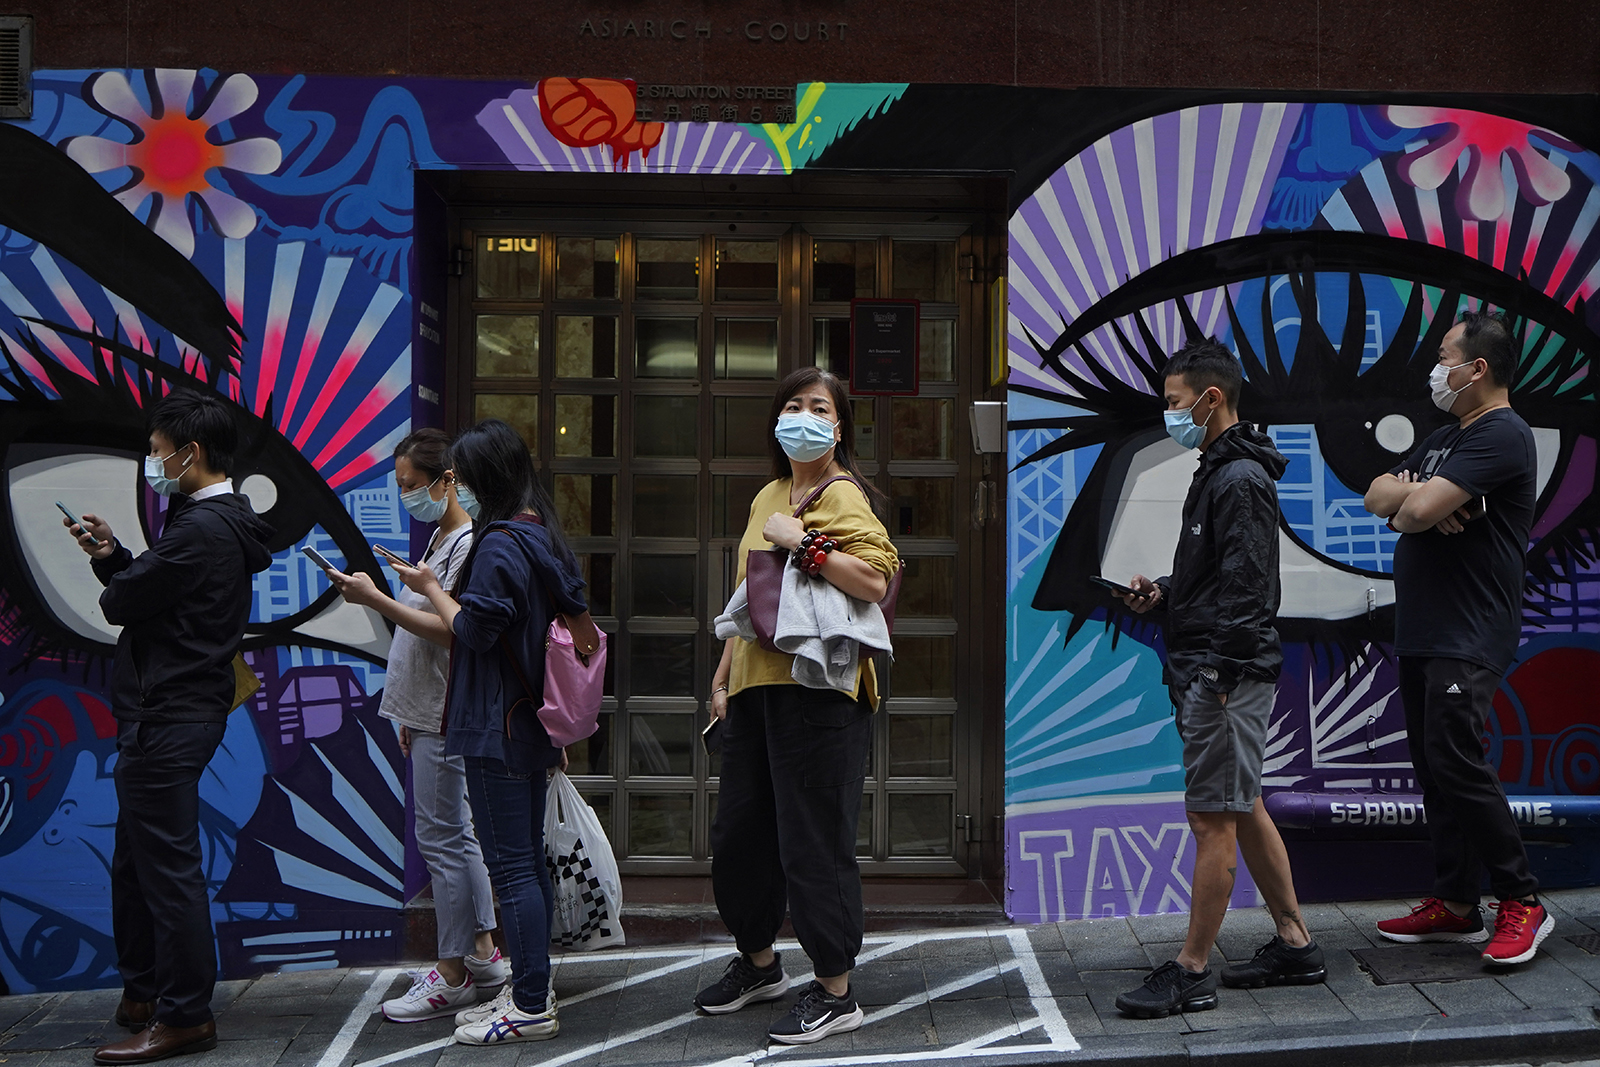 People wearing face masks to help curb the spread of the coronavirus wait outside a bakery in Hong Kong on Monday, Nov. 30.